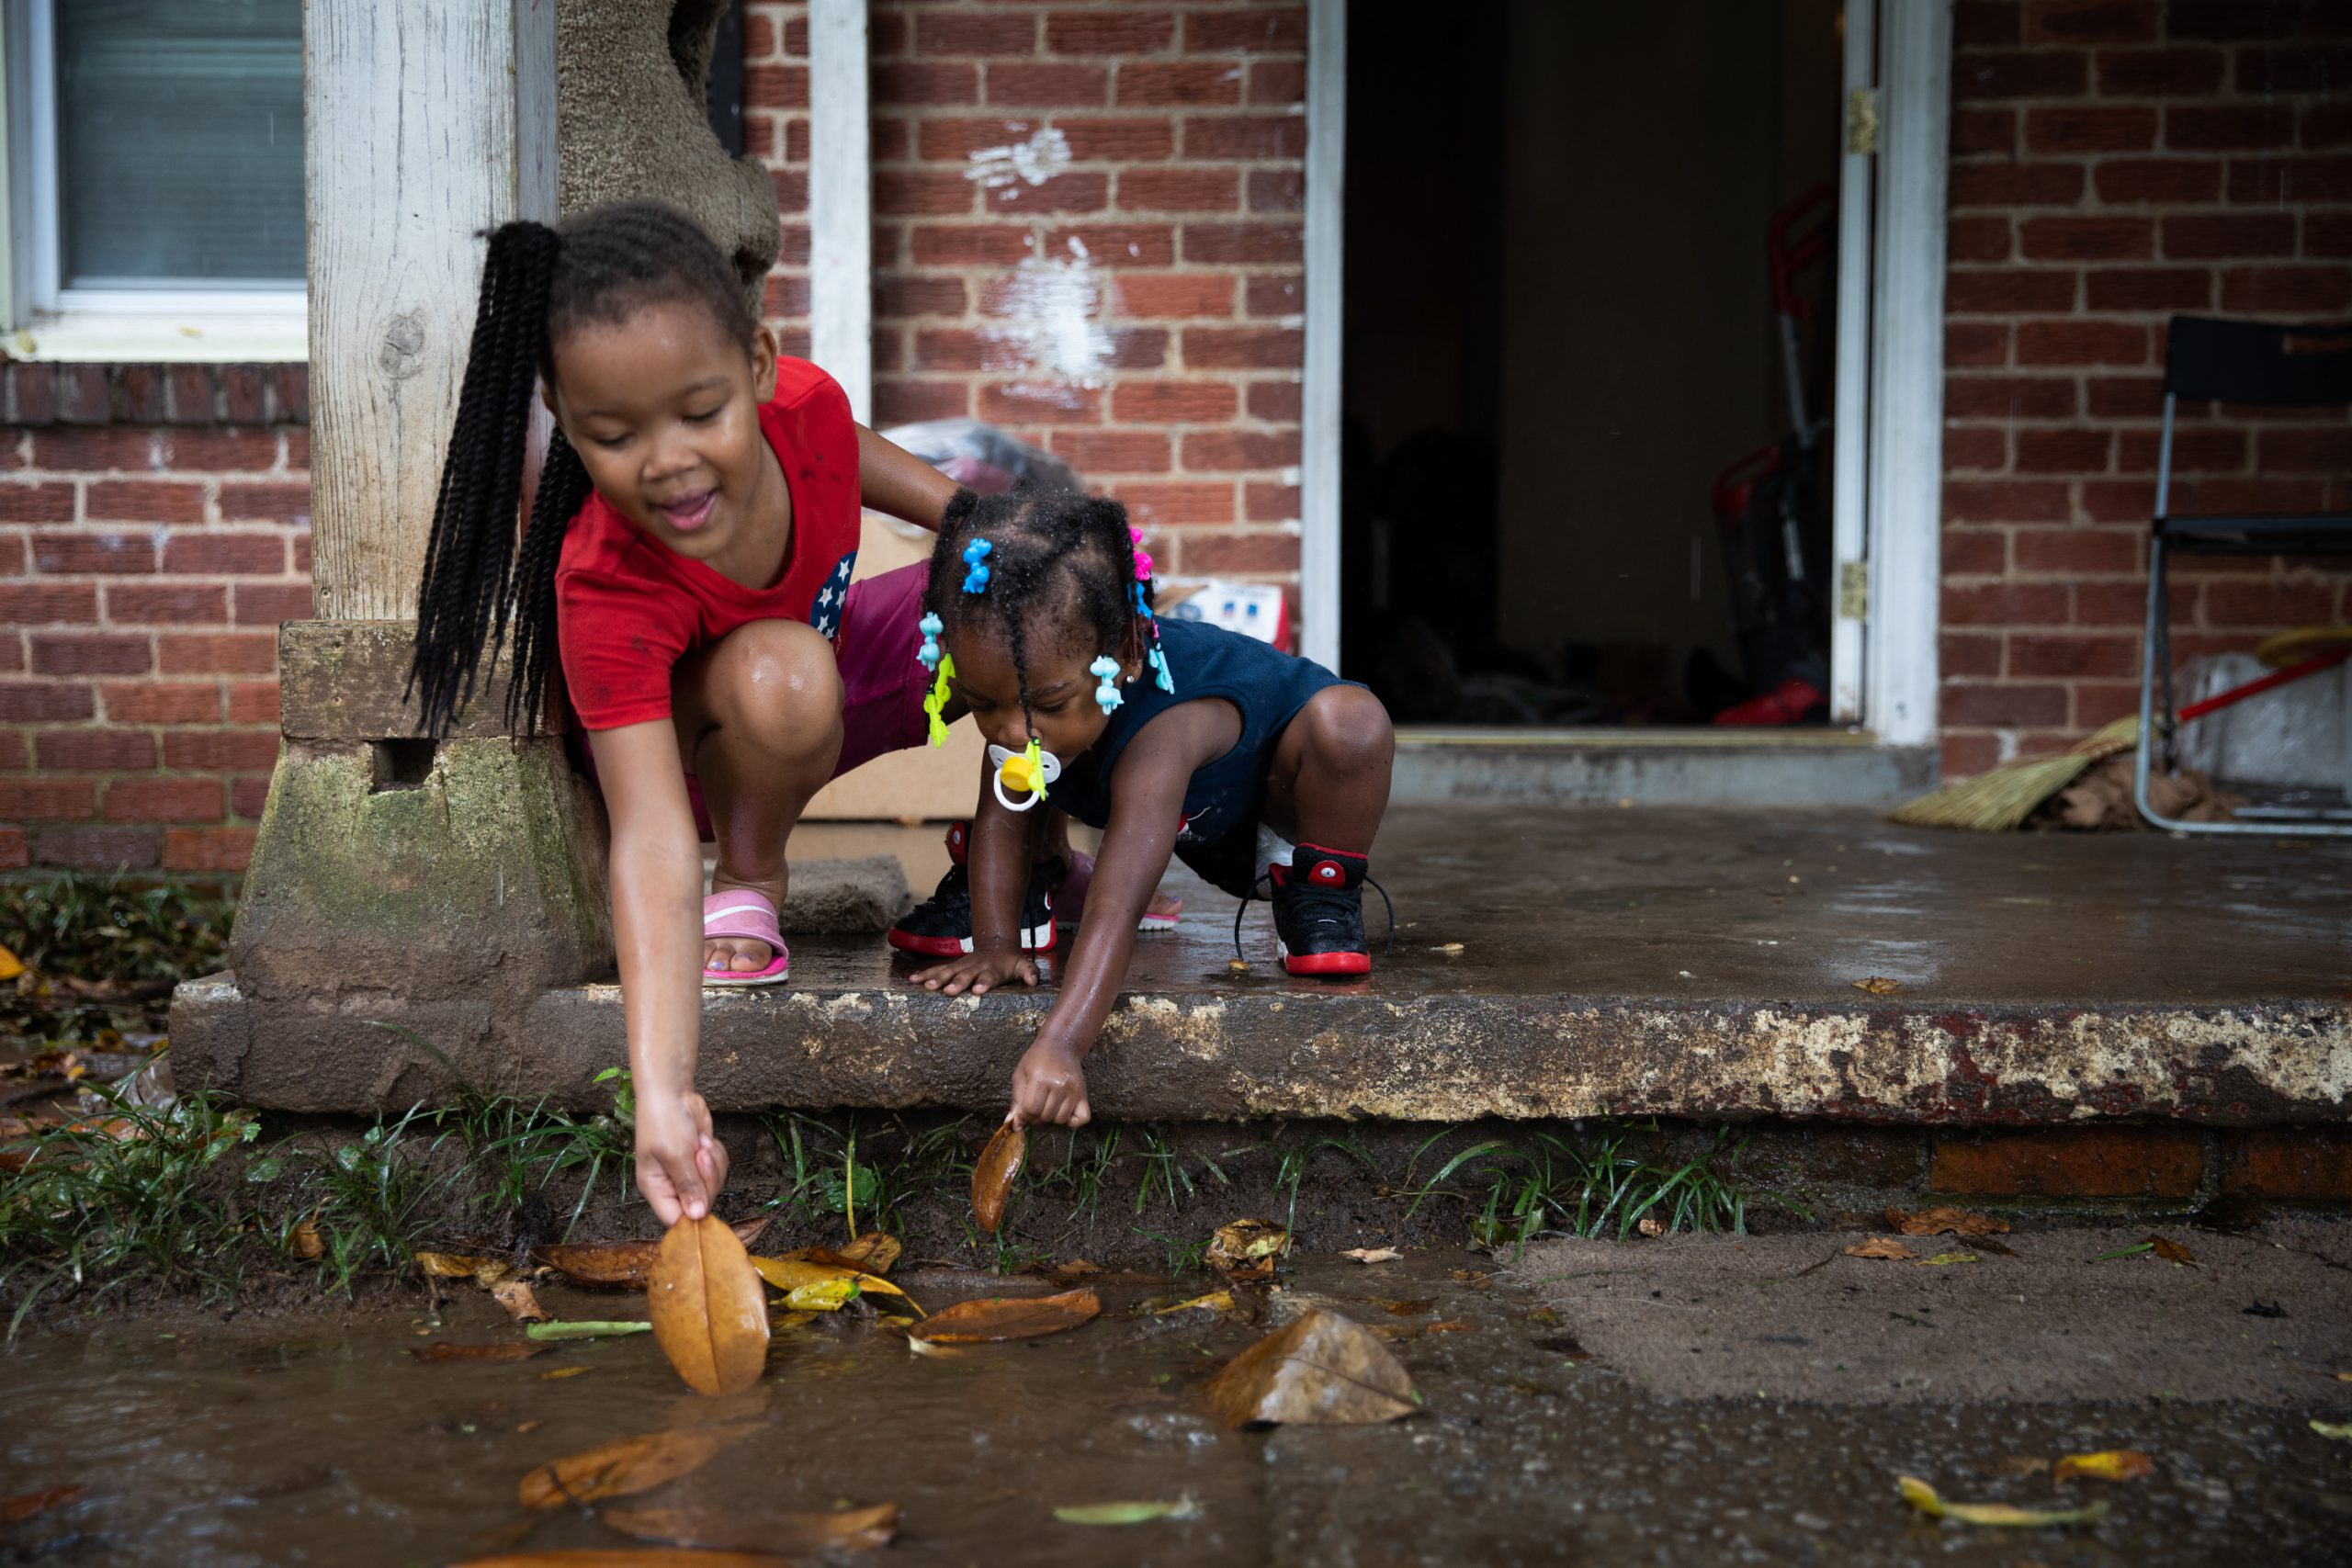 Two young girls play with leaves in rain outside